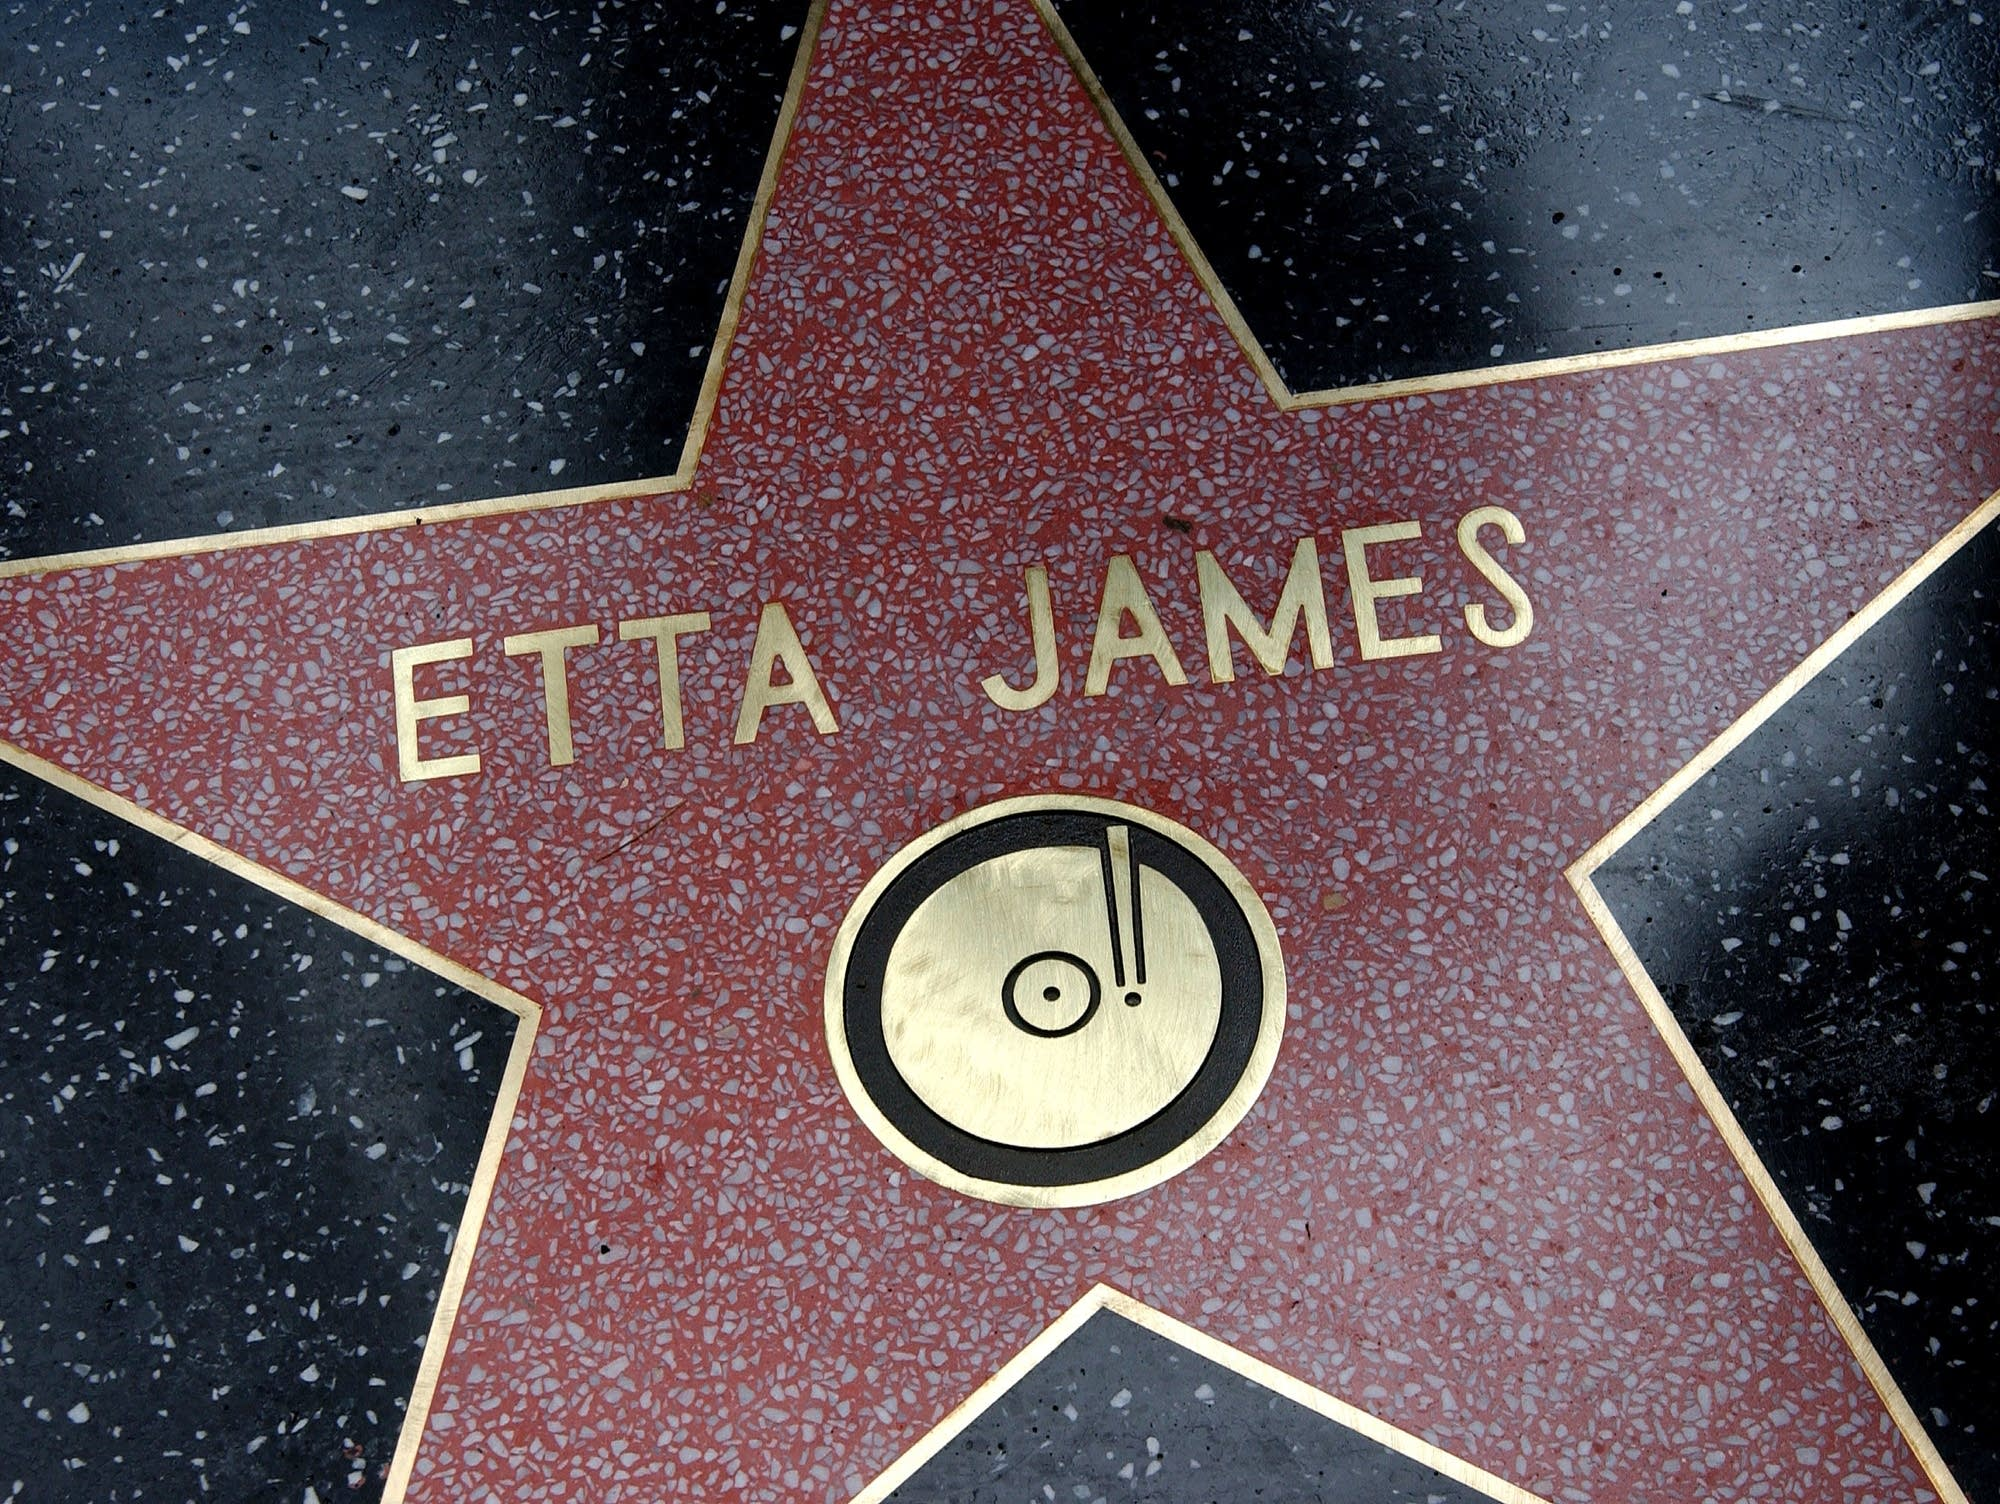 Etta James star on the walk of fame